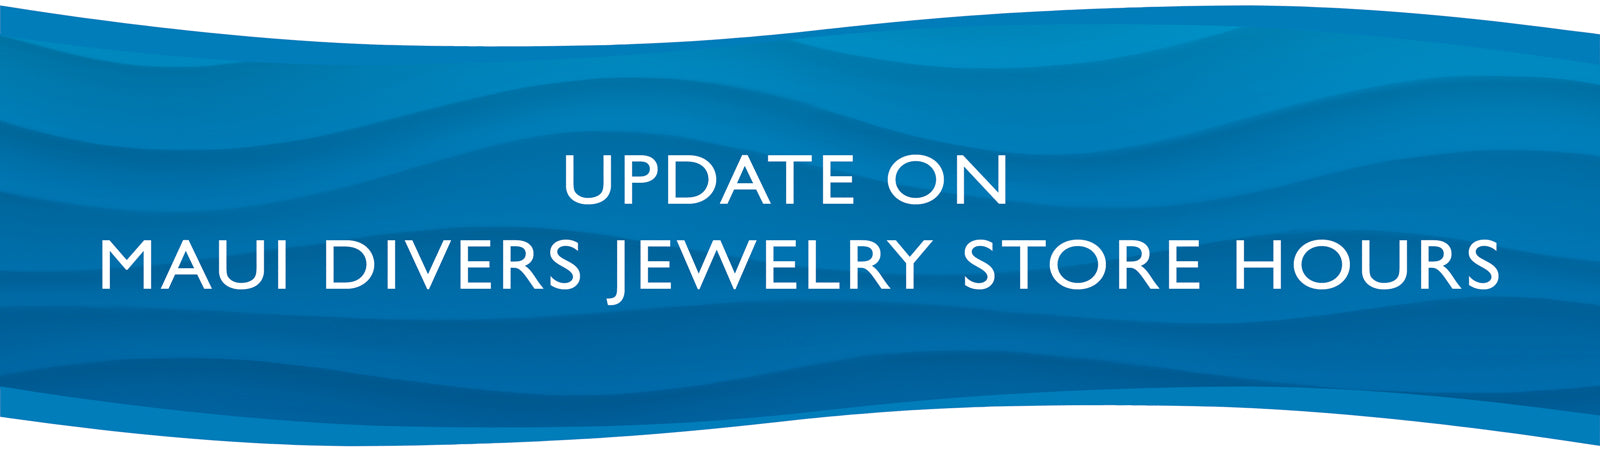 Update on Maui Divers Jewelry Store Hours